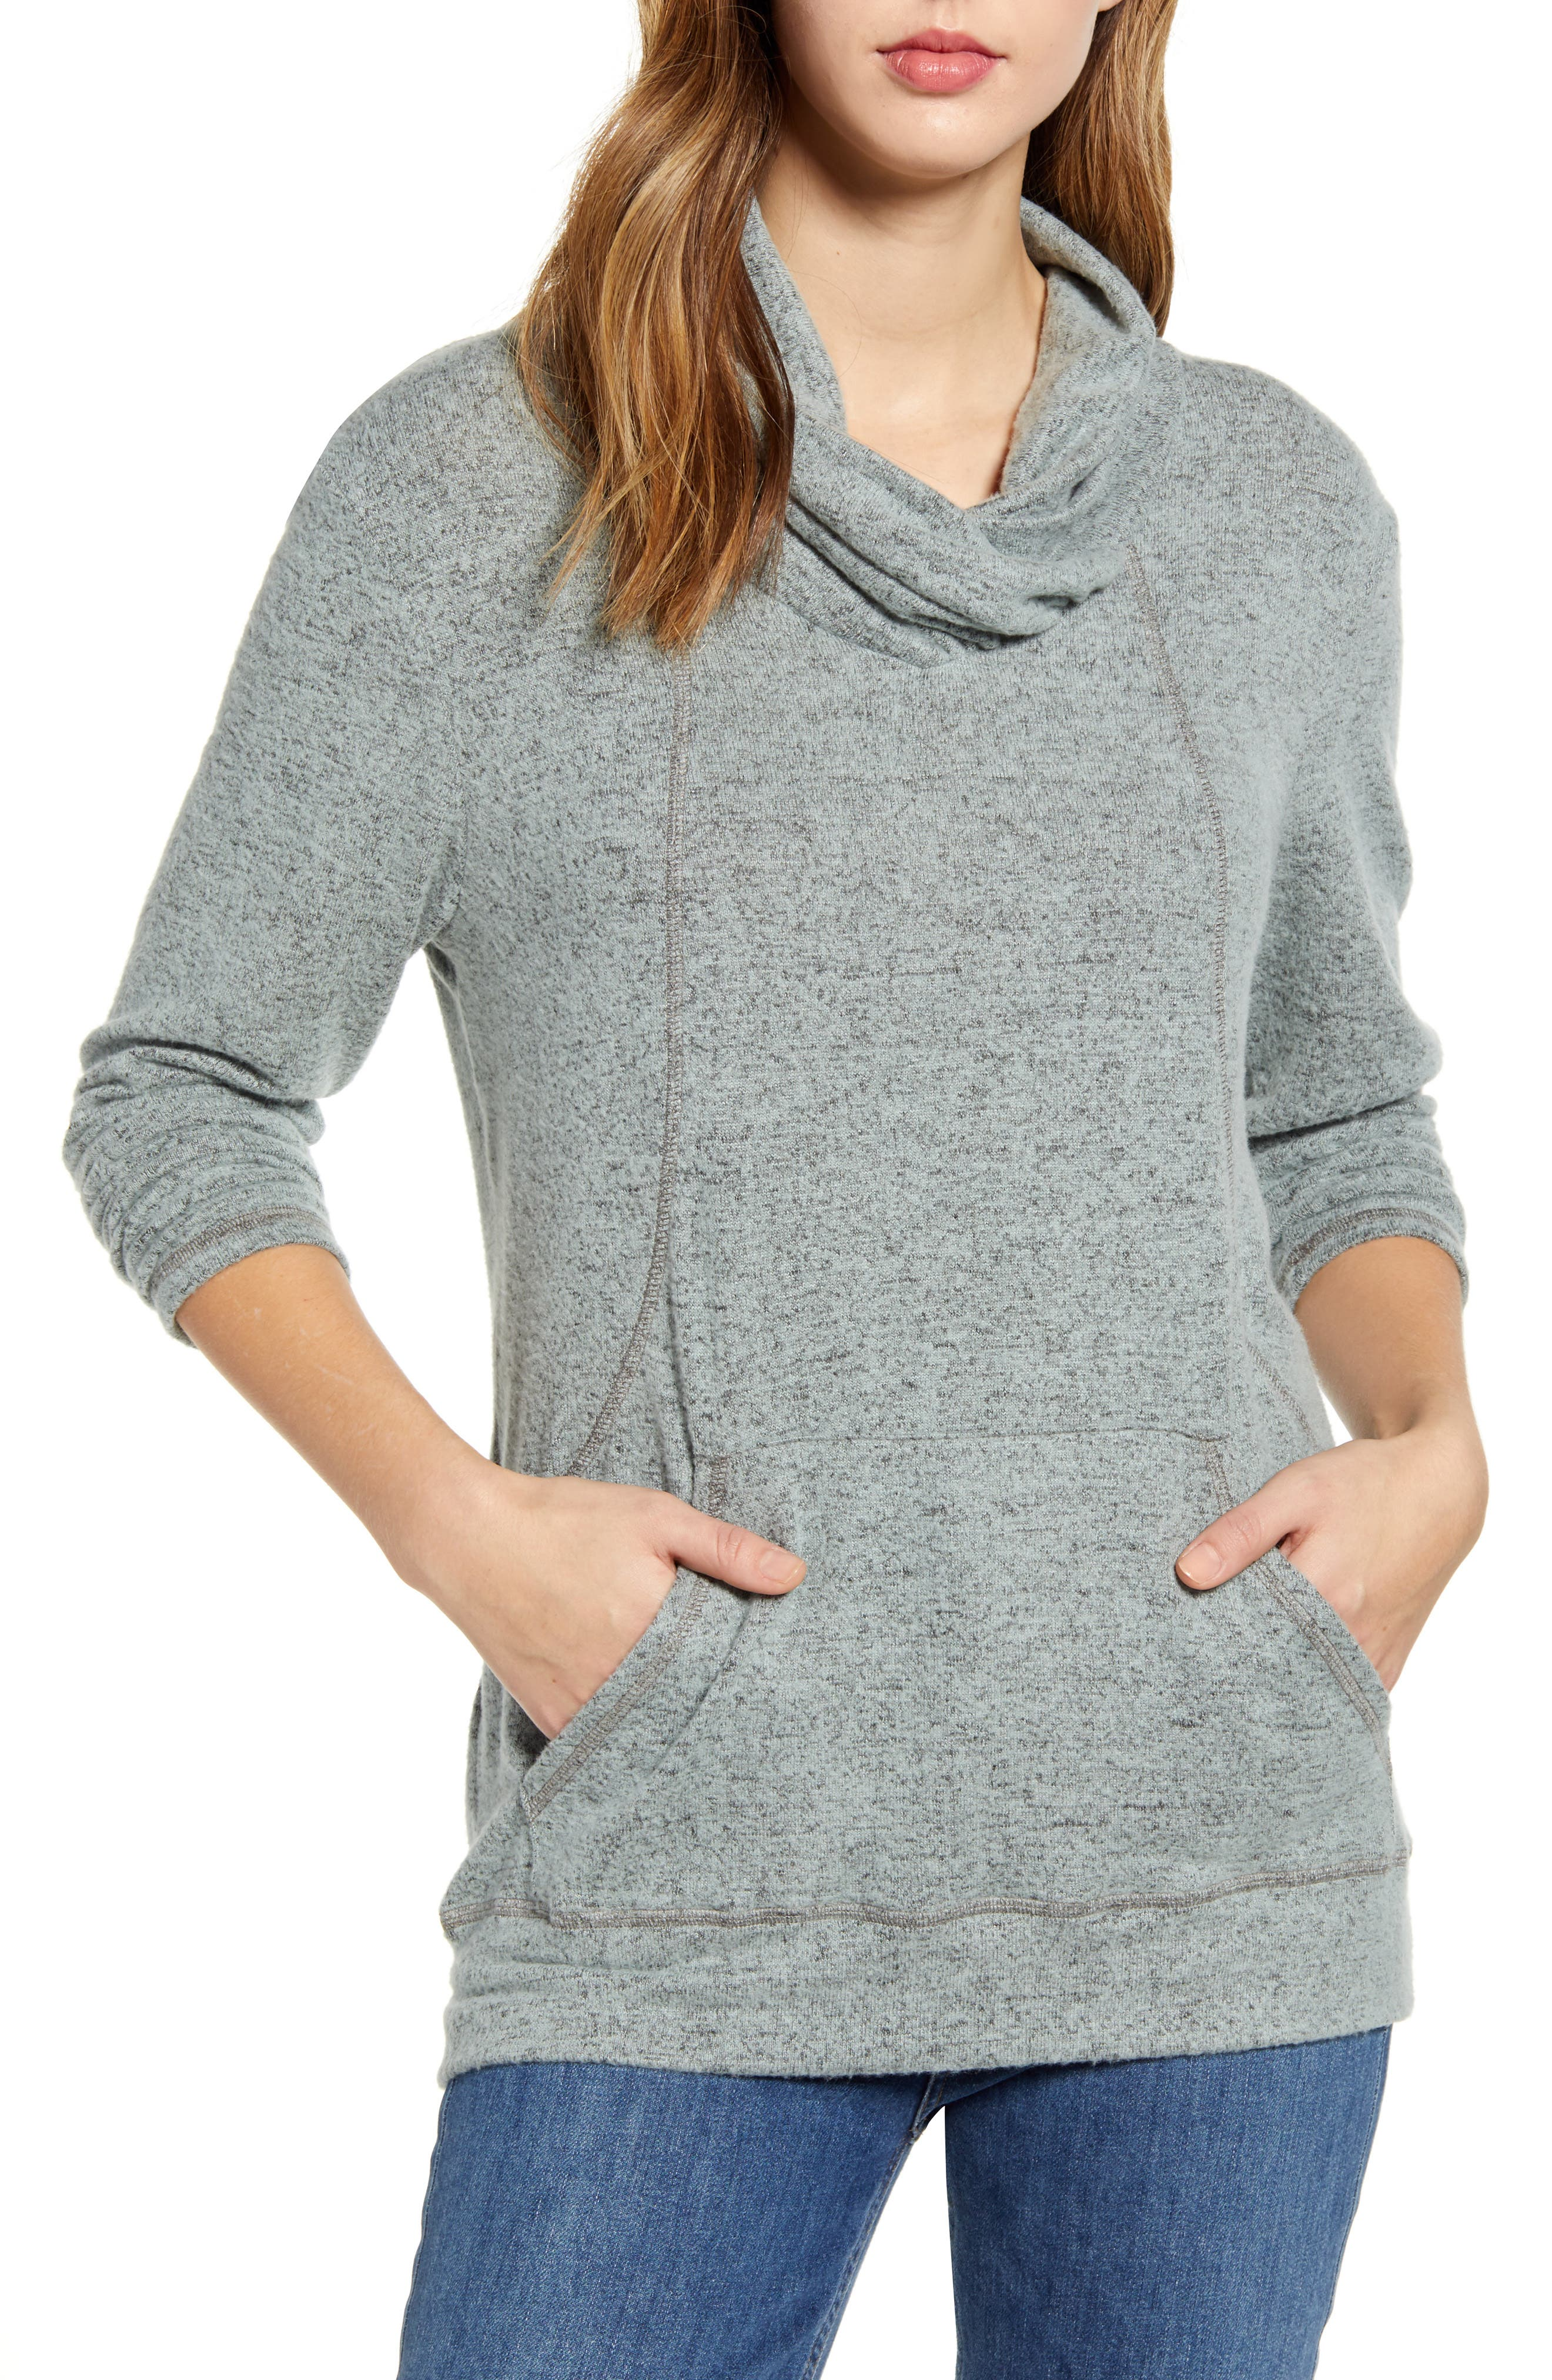 Make it an off-duty day in this cozy brushed pullover, styled with a twisted cowl neck and handy kangaroo pocket. Style Name: Loveappella Cross Neck Seamed Pullover. Style Number: 5942361. Available in stores.